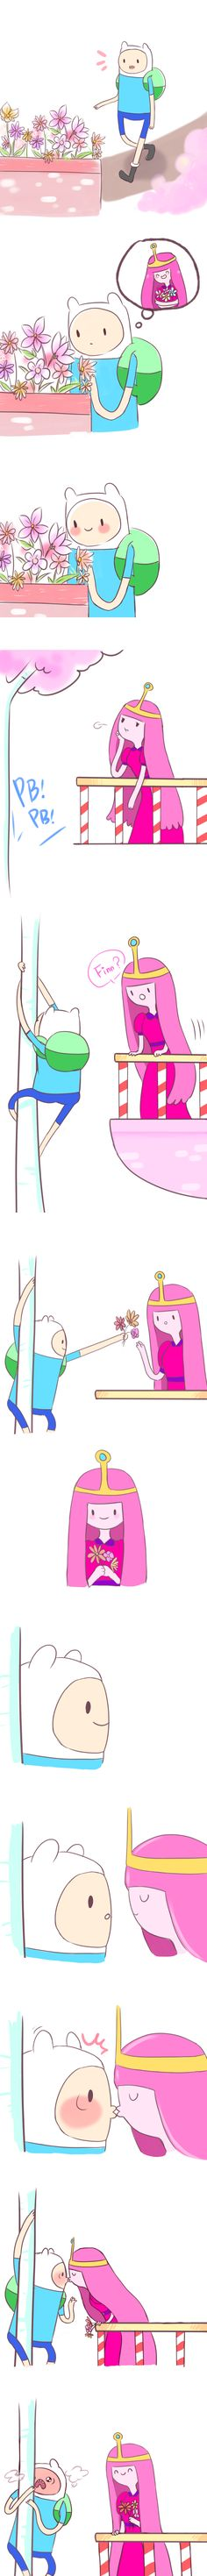 Finn and Princess Bubblegum by Viate